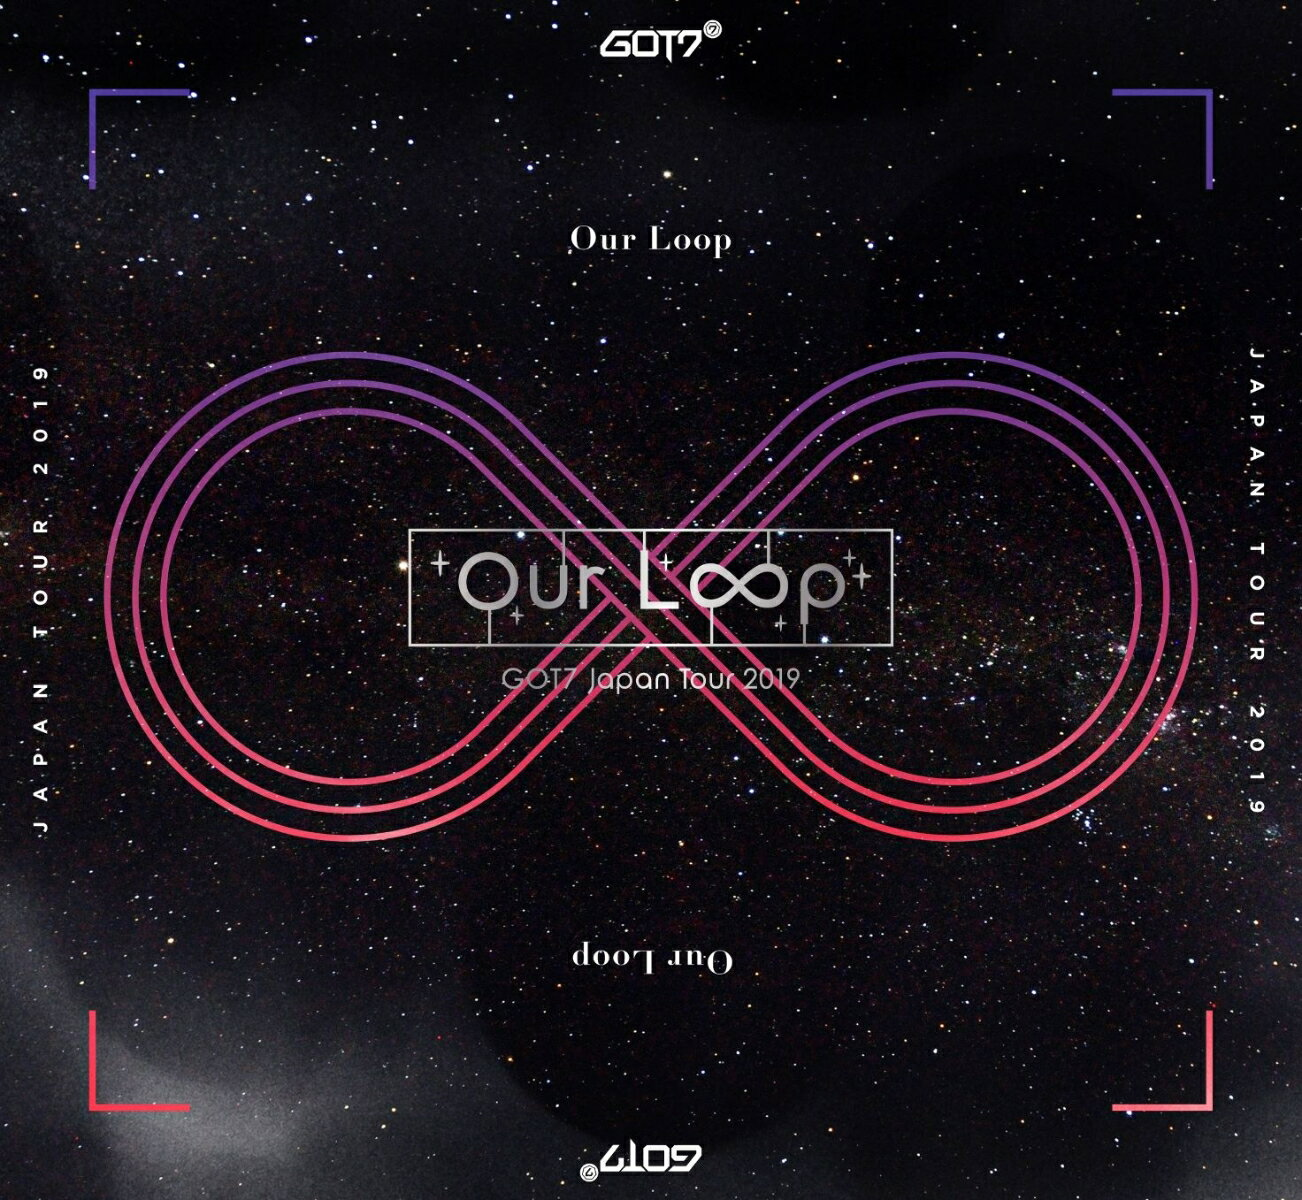 "GOT7 Japan Tour 2019 ""Our Loop"" 初回生産限定盤"